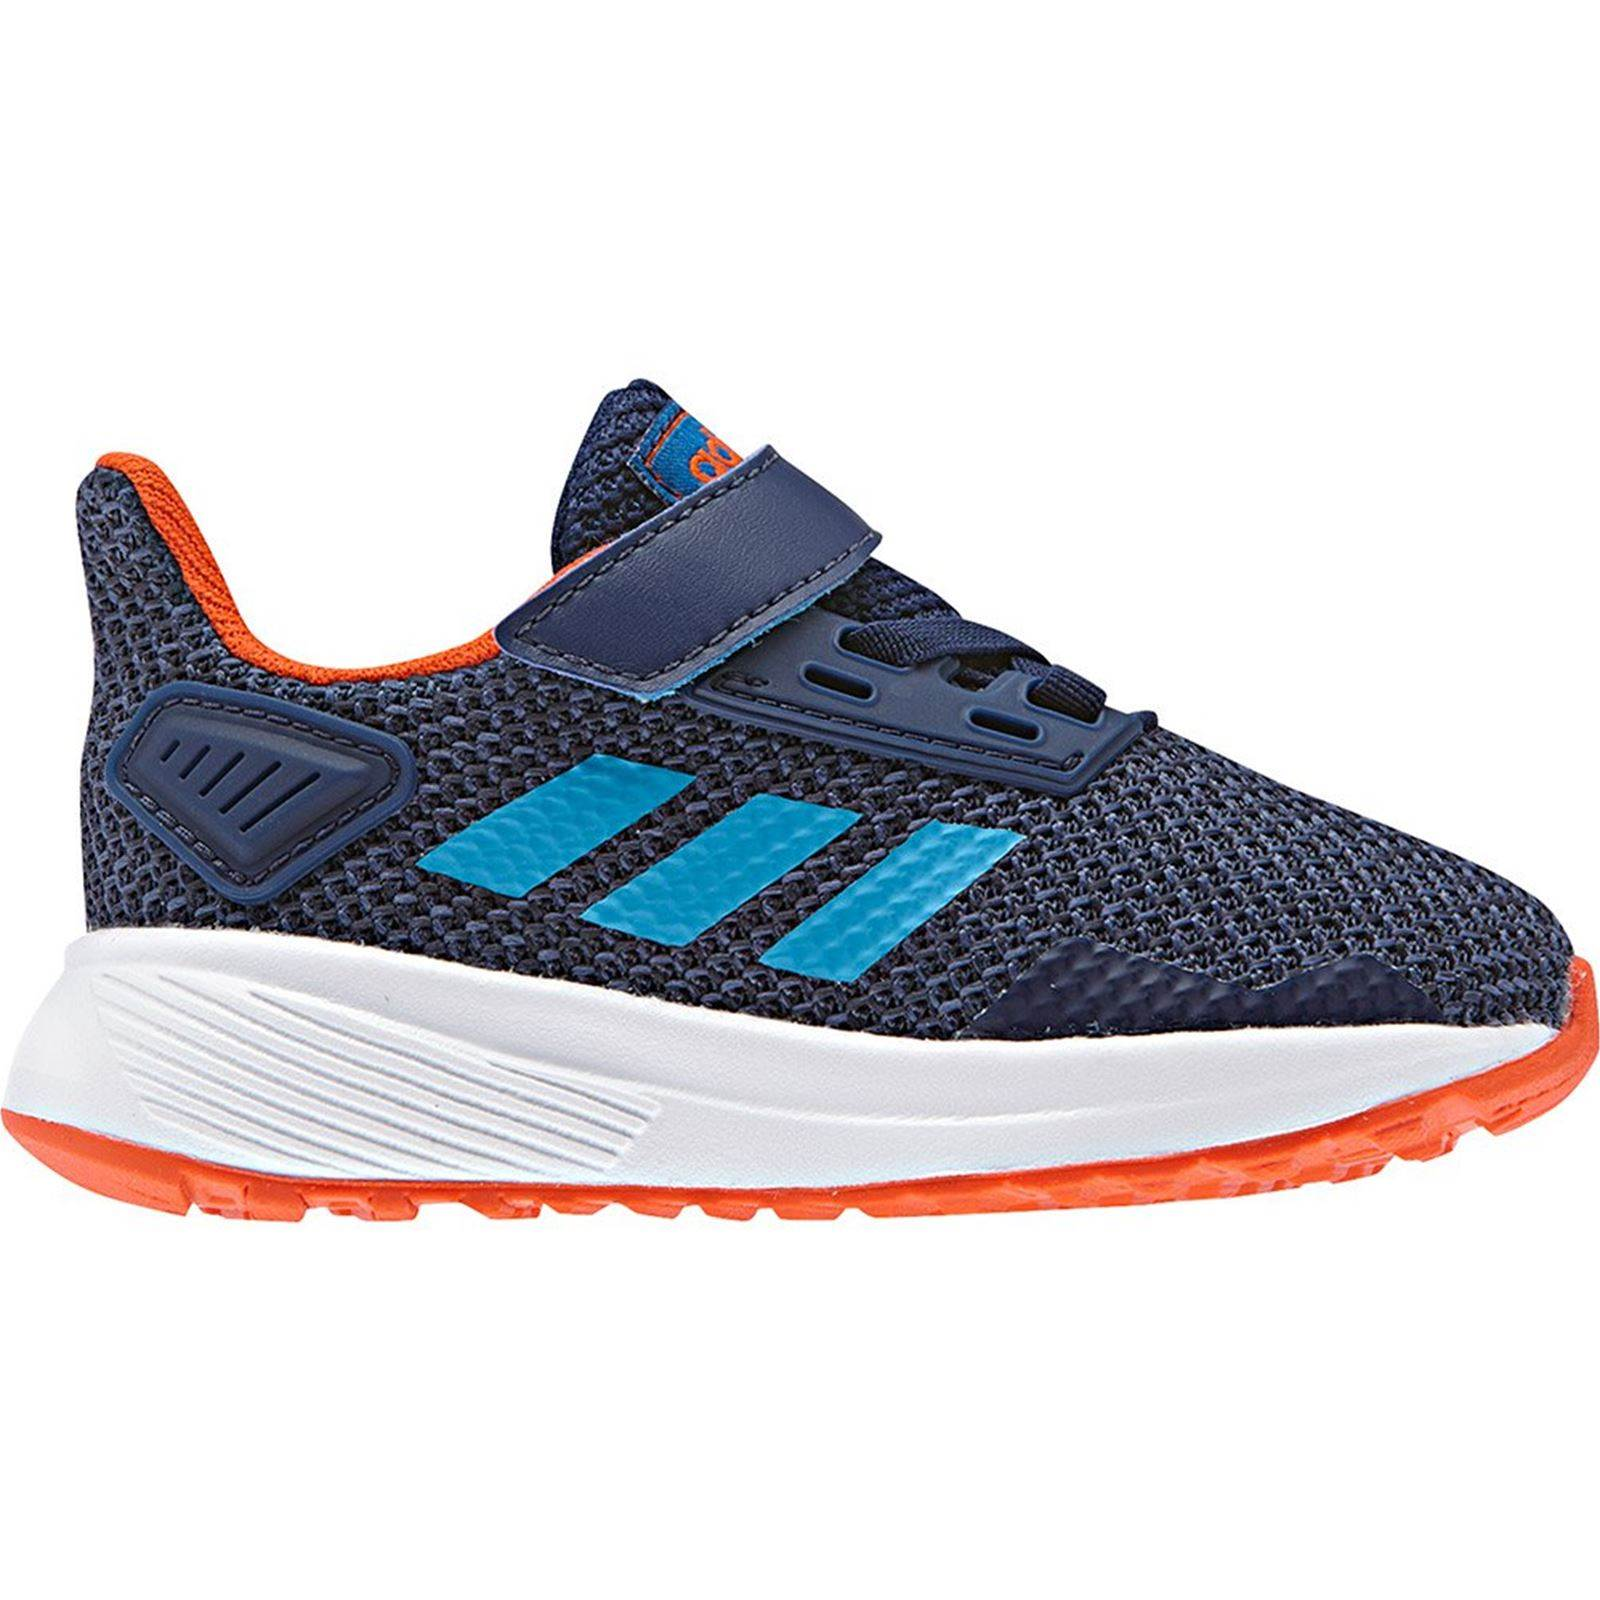 online retailer newest 100% authentic Chaussures de sport - bleu